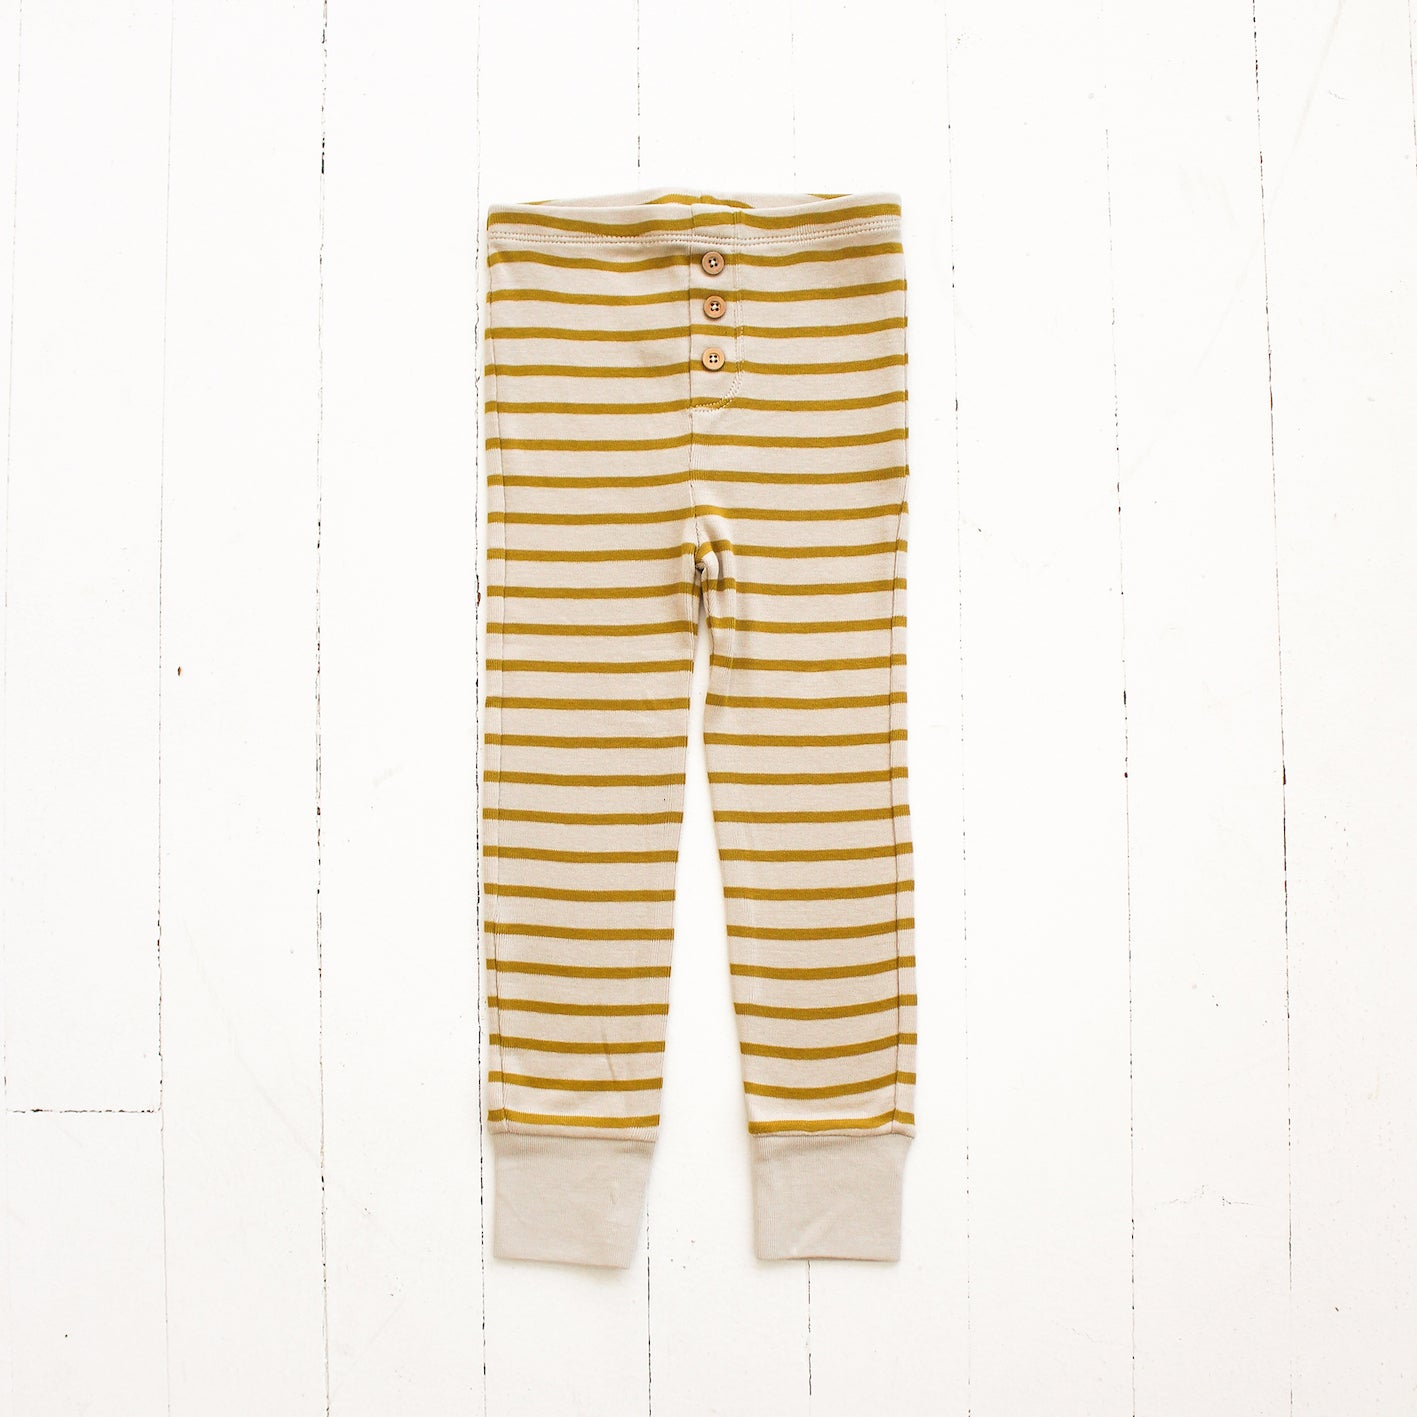 Fin and Vince Pima Cotton Striped Button Pant - Mustard